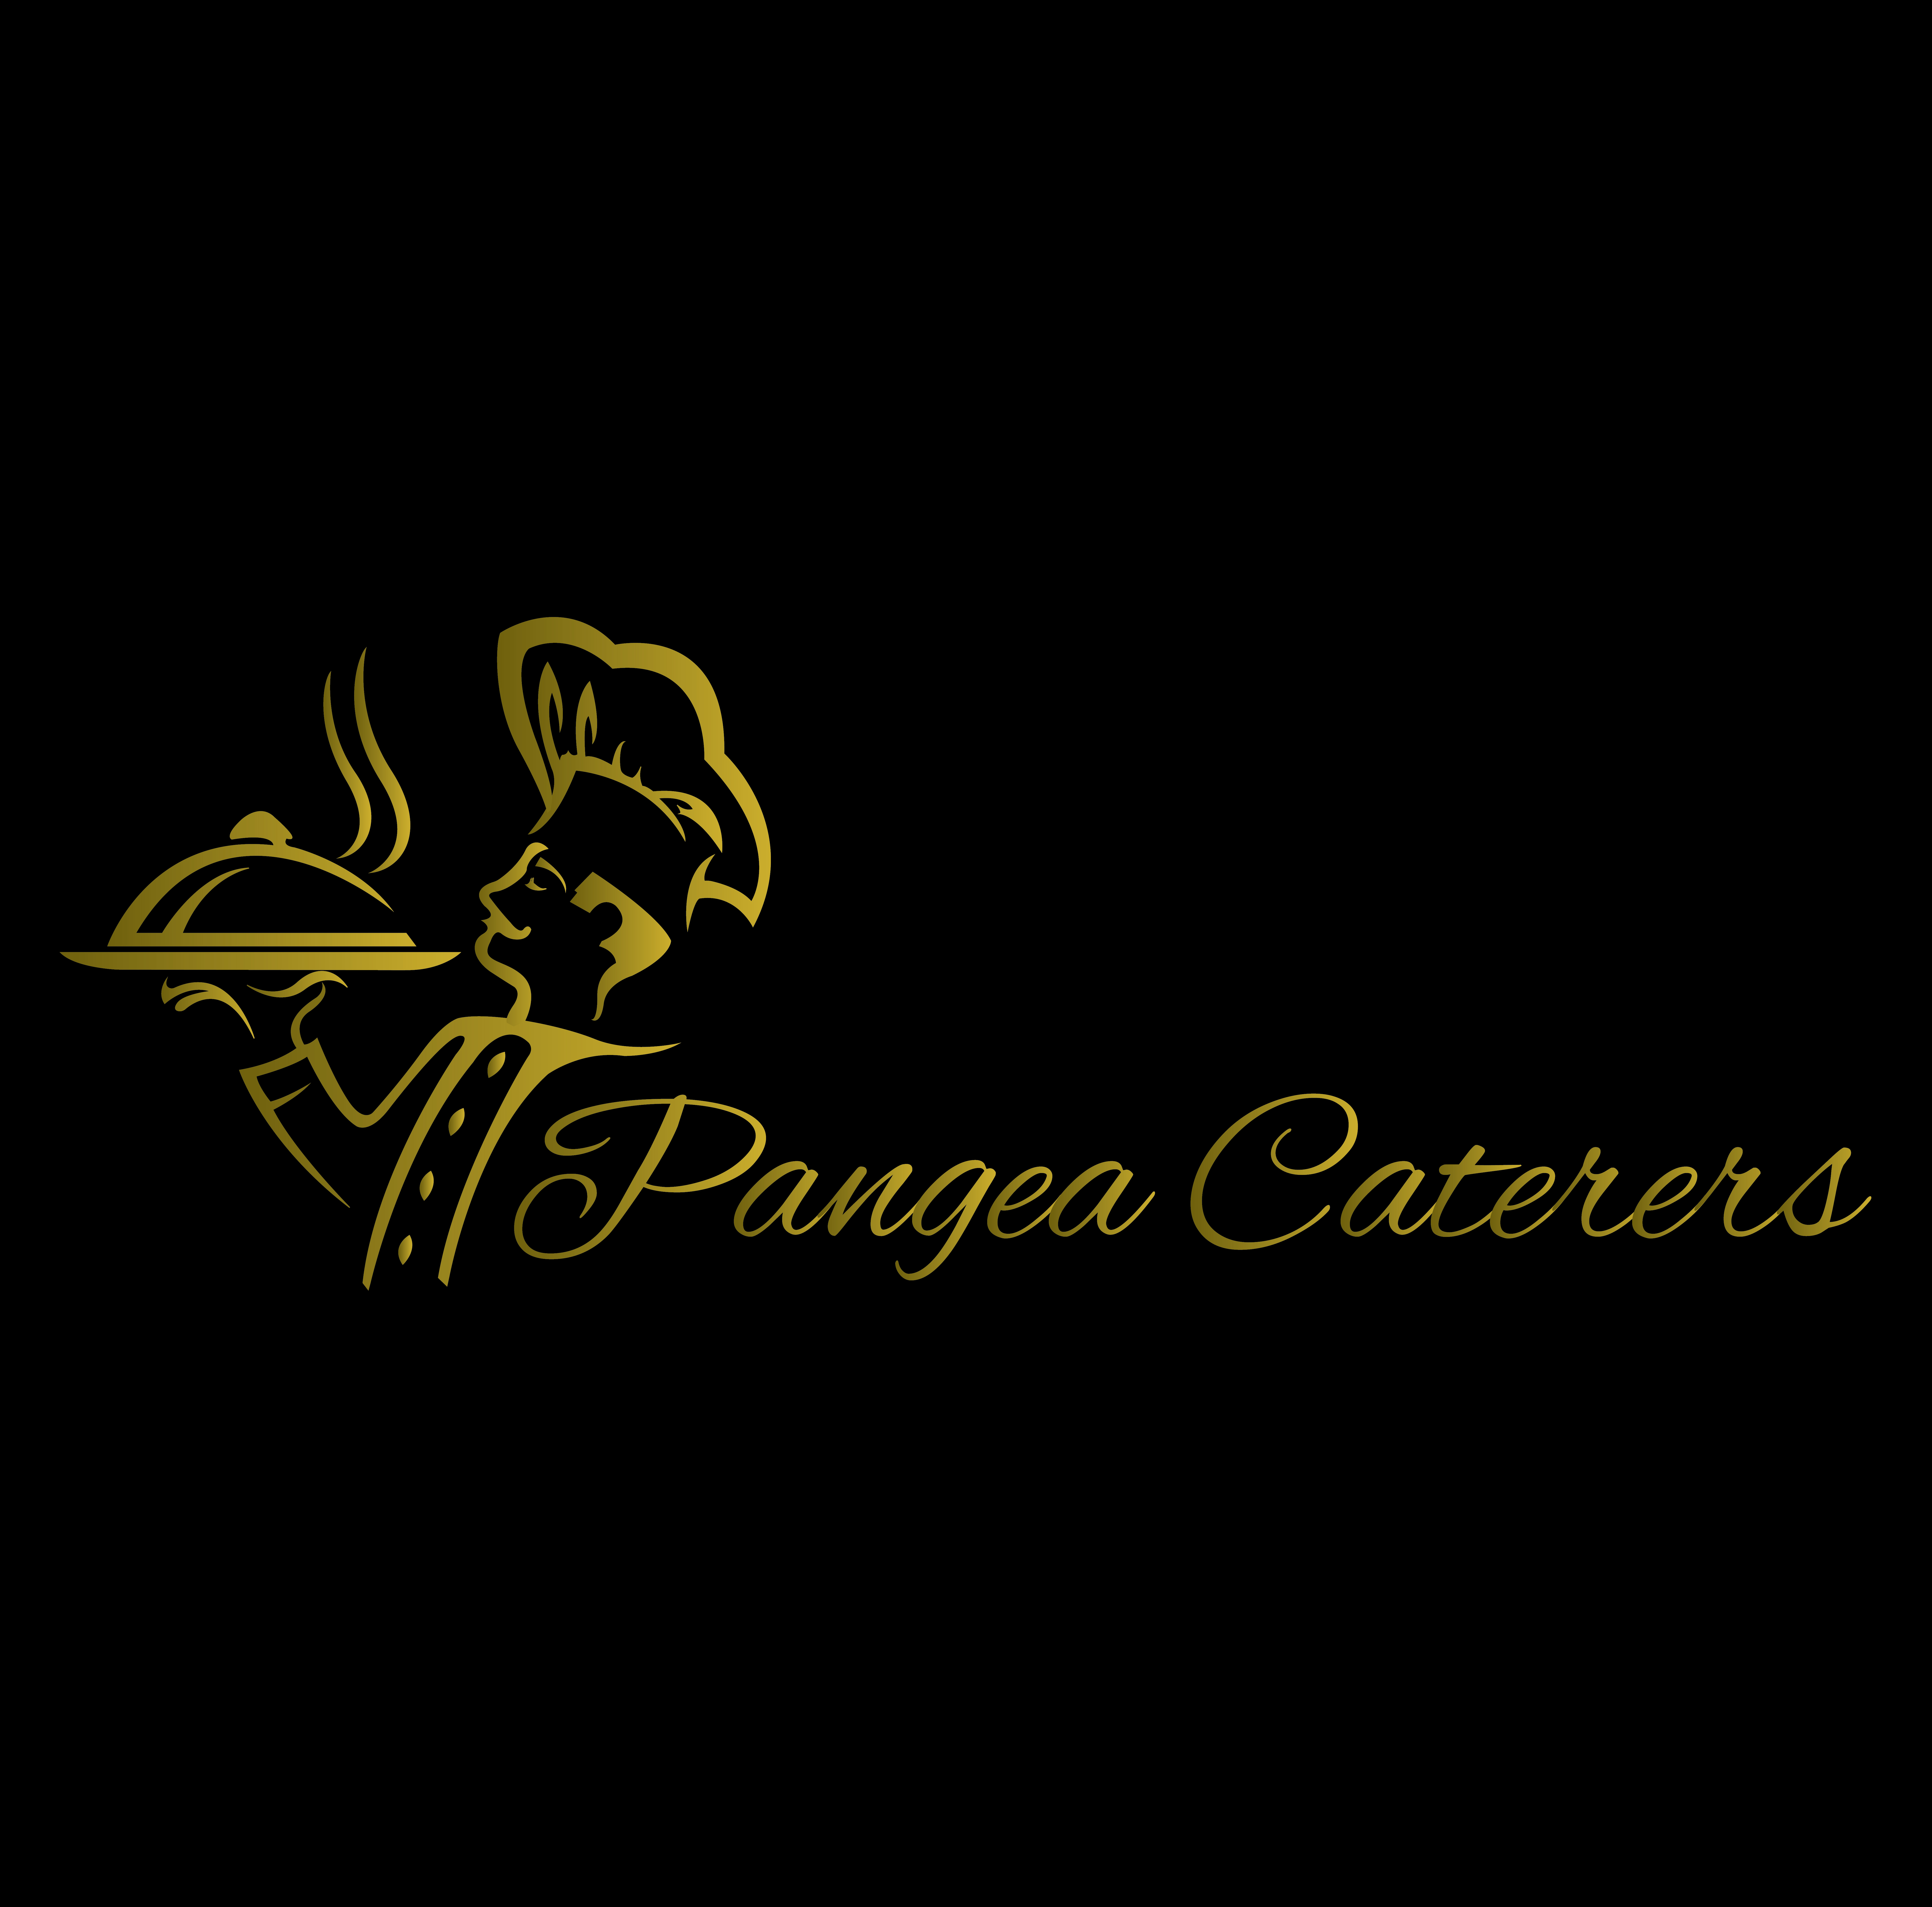 Introducing Pangea Caterers, A Fully-licensed, Premium Ethnic Catering Company